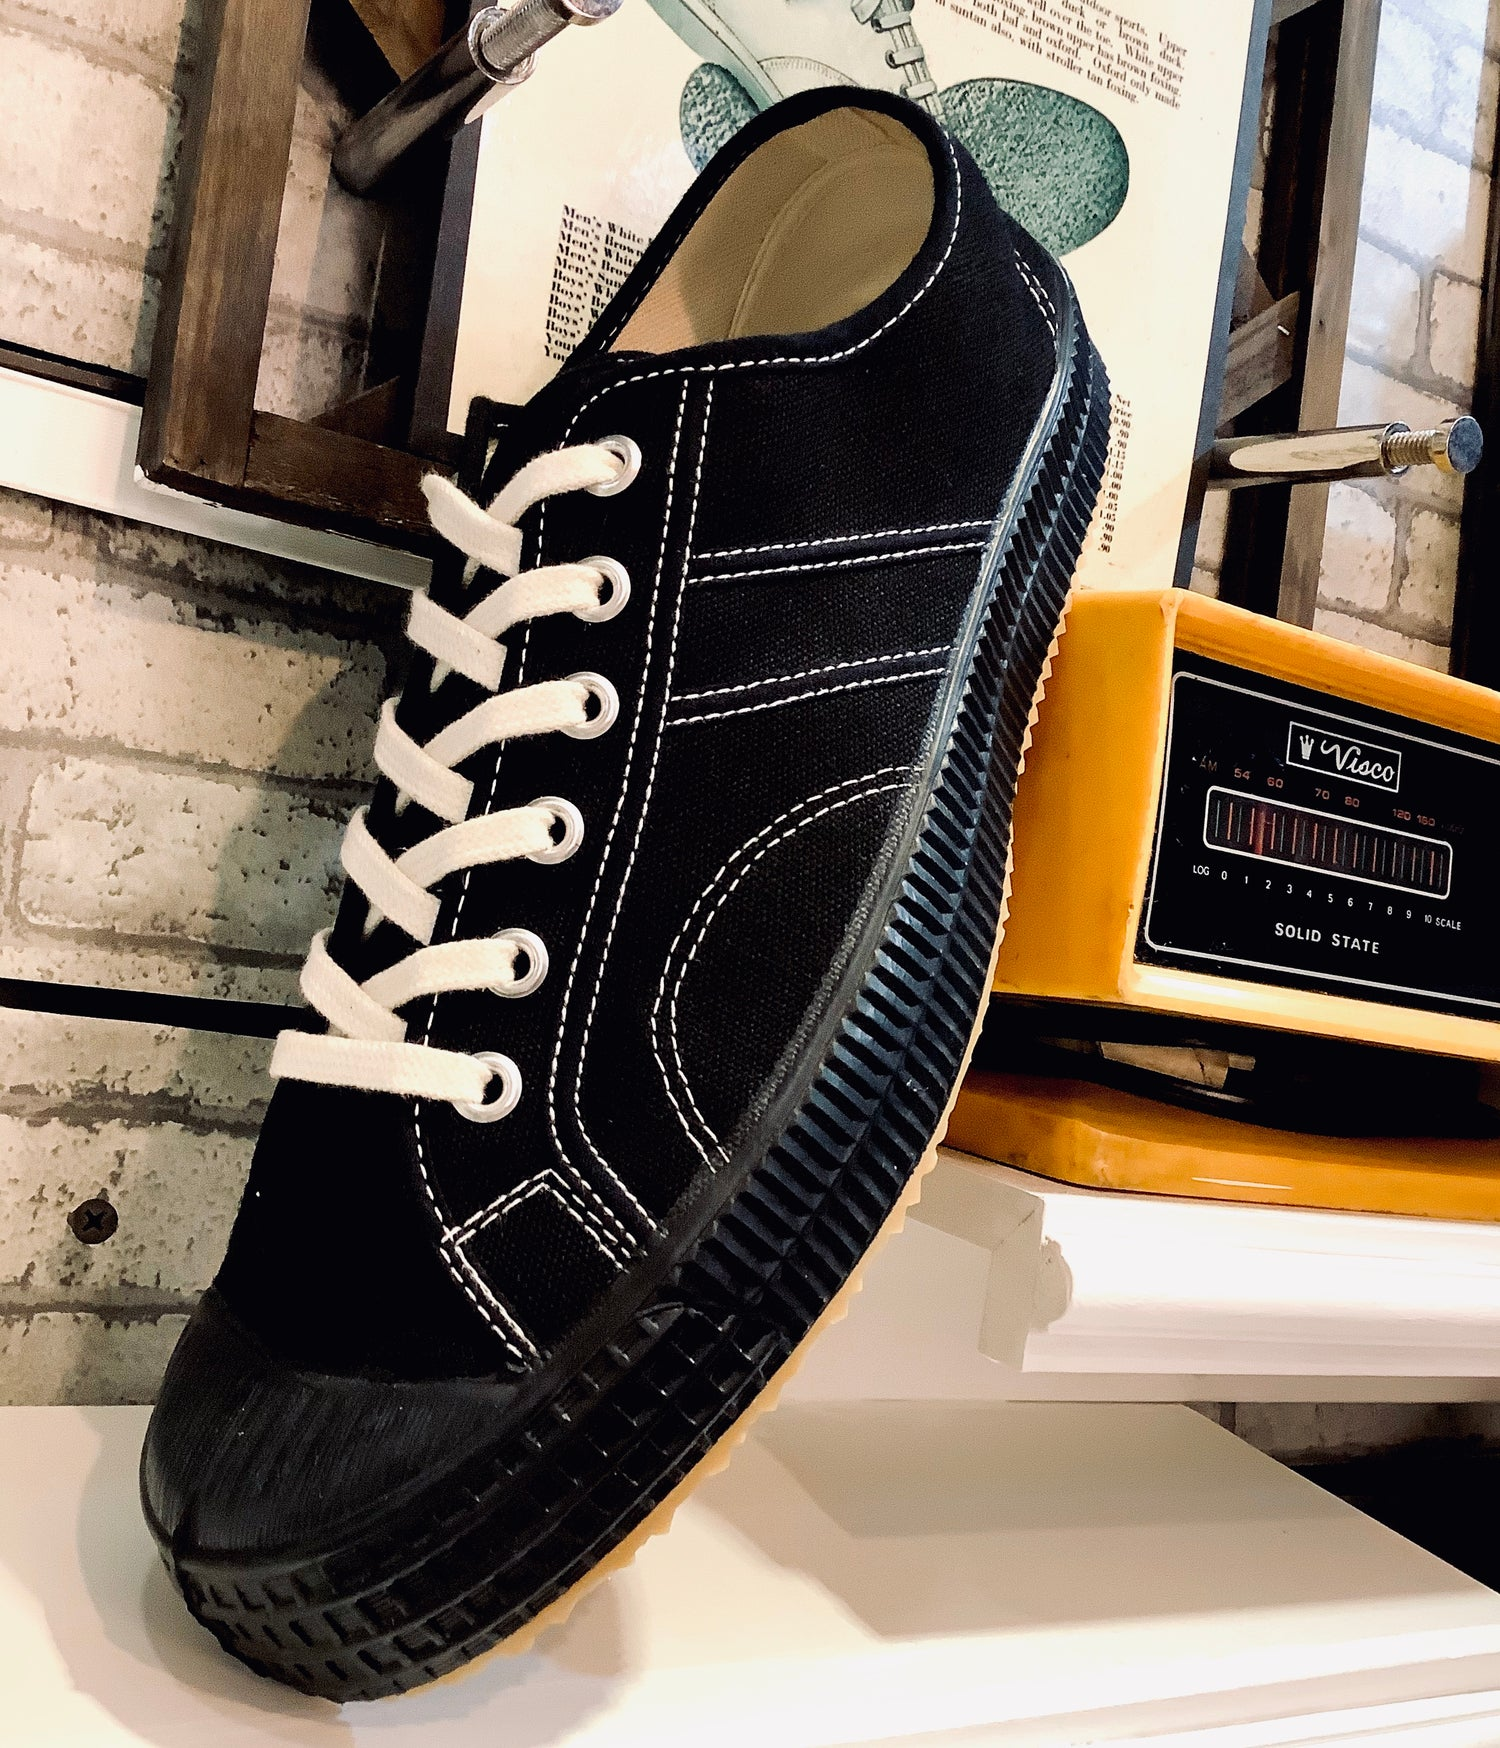 Image of VEGANCRAFT lo top canvas sneaker shoes made in Slovakia